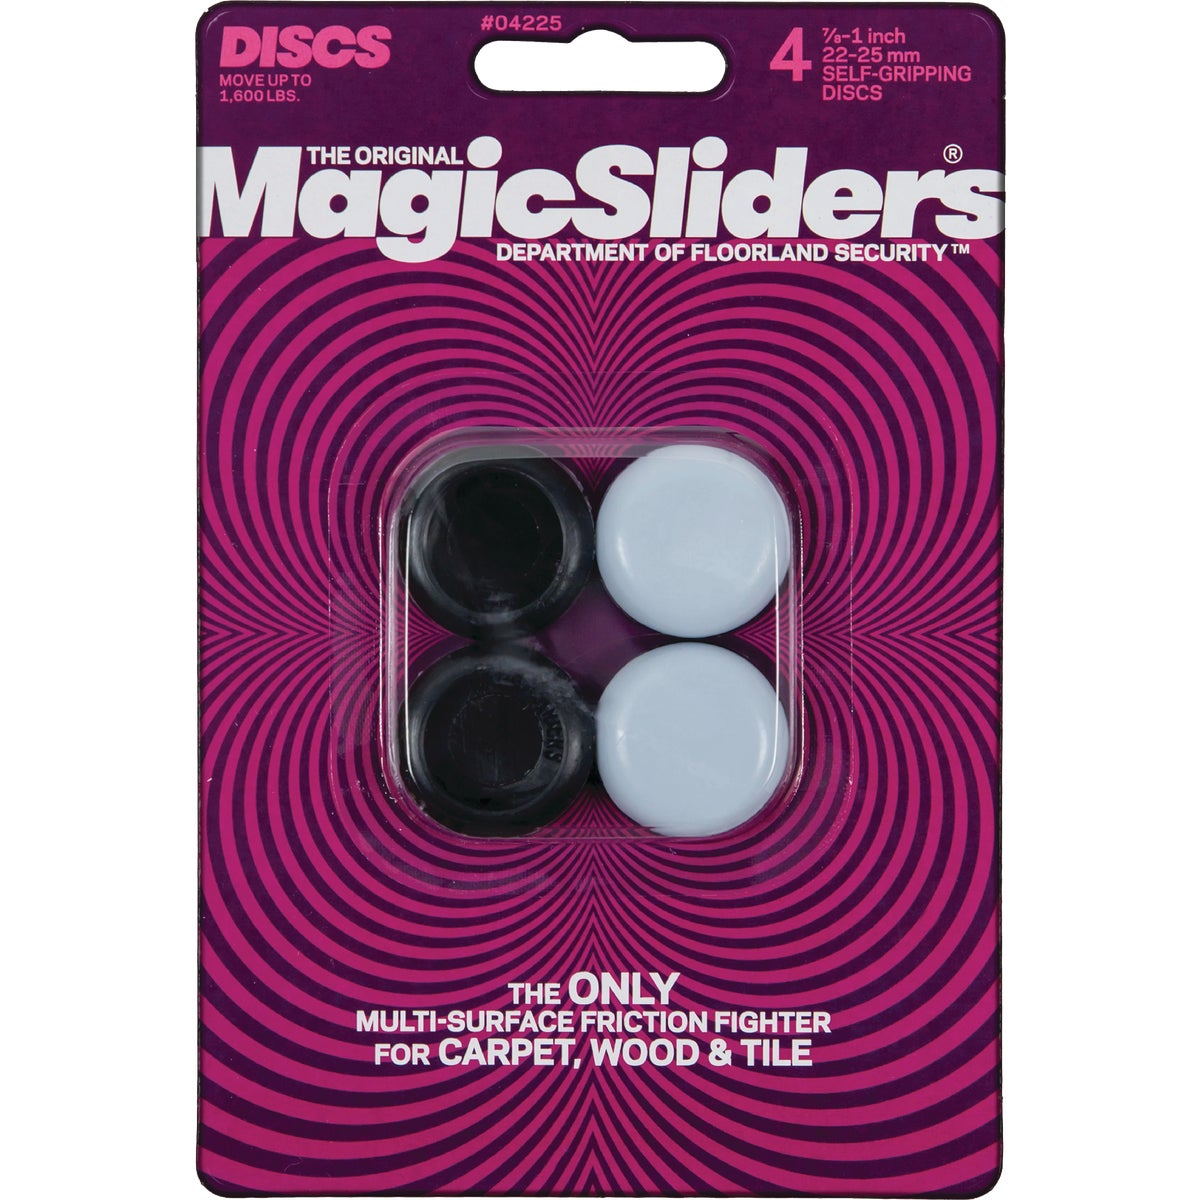 7/8-1 RND MAGIC SLIDER - 04225 by Magic Sliders